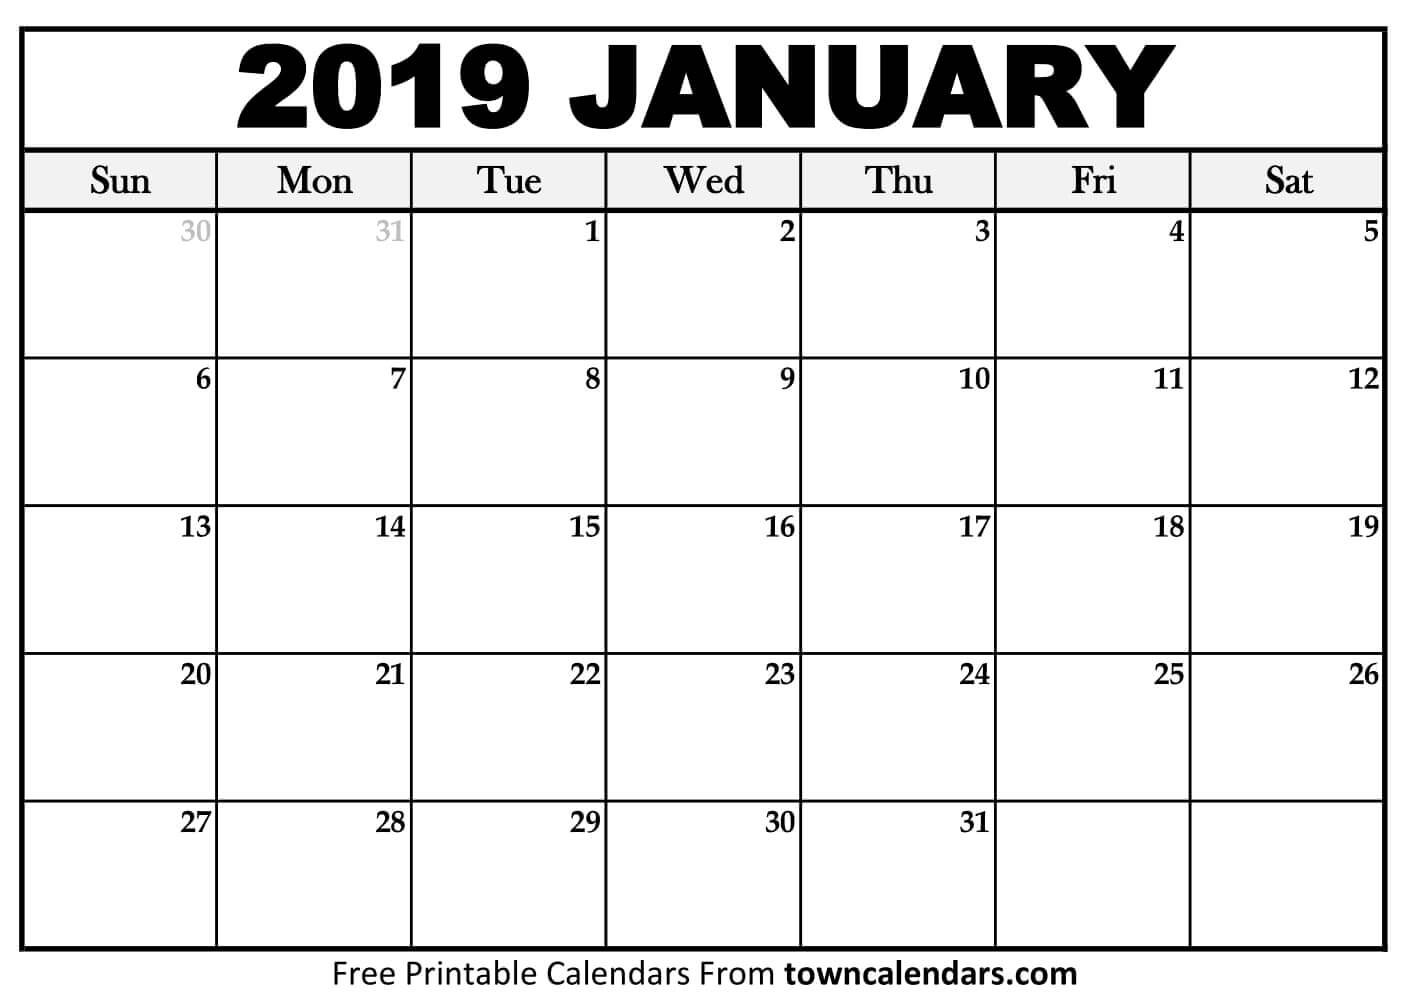 Printable January 2019 Calendar - Towncalendars Calendar 2019 Jan